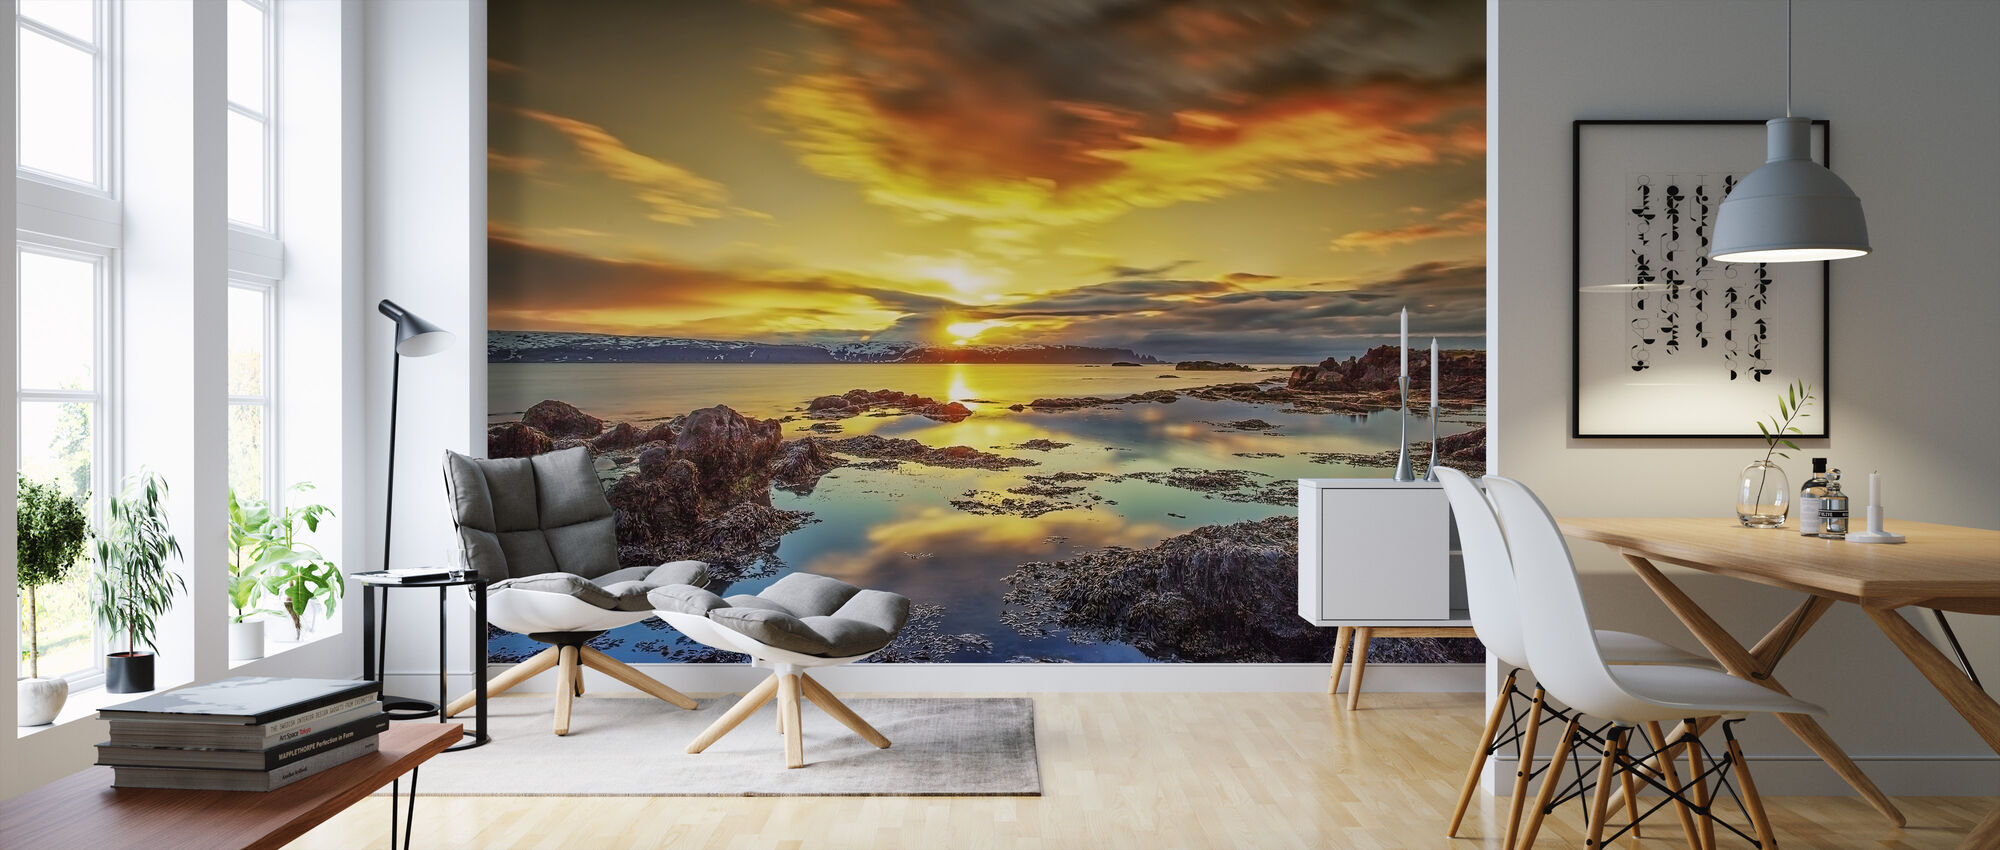 Scenery of West Iceland - Wallpaper - Living Room